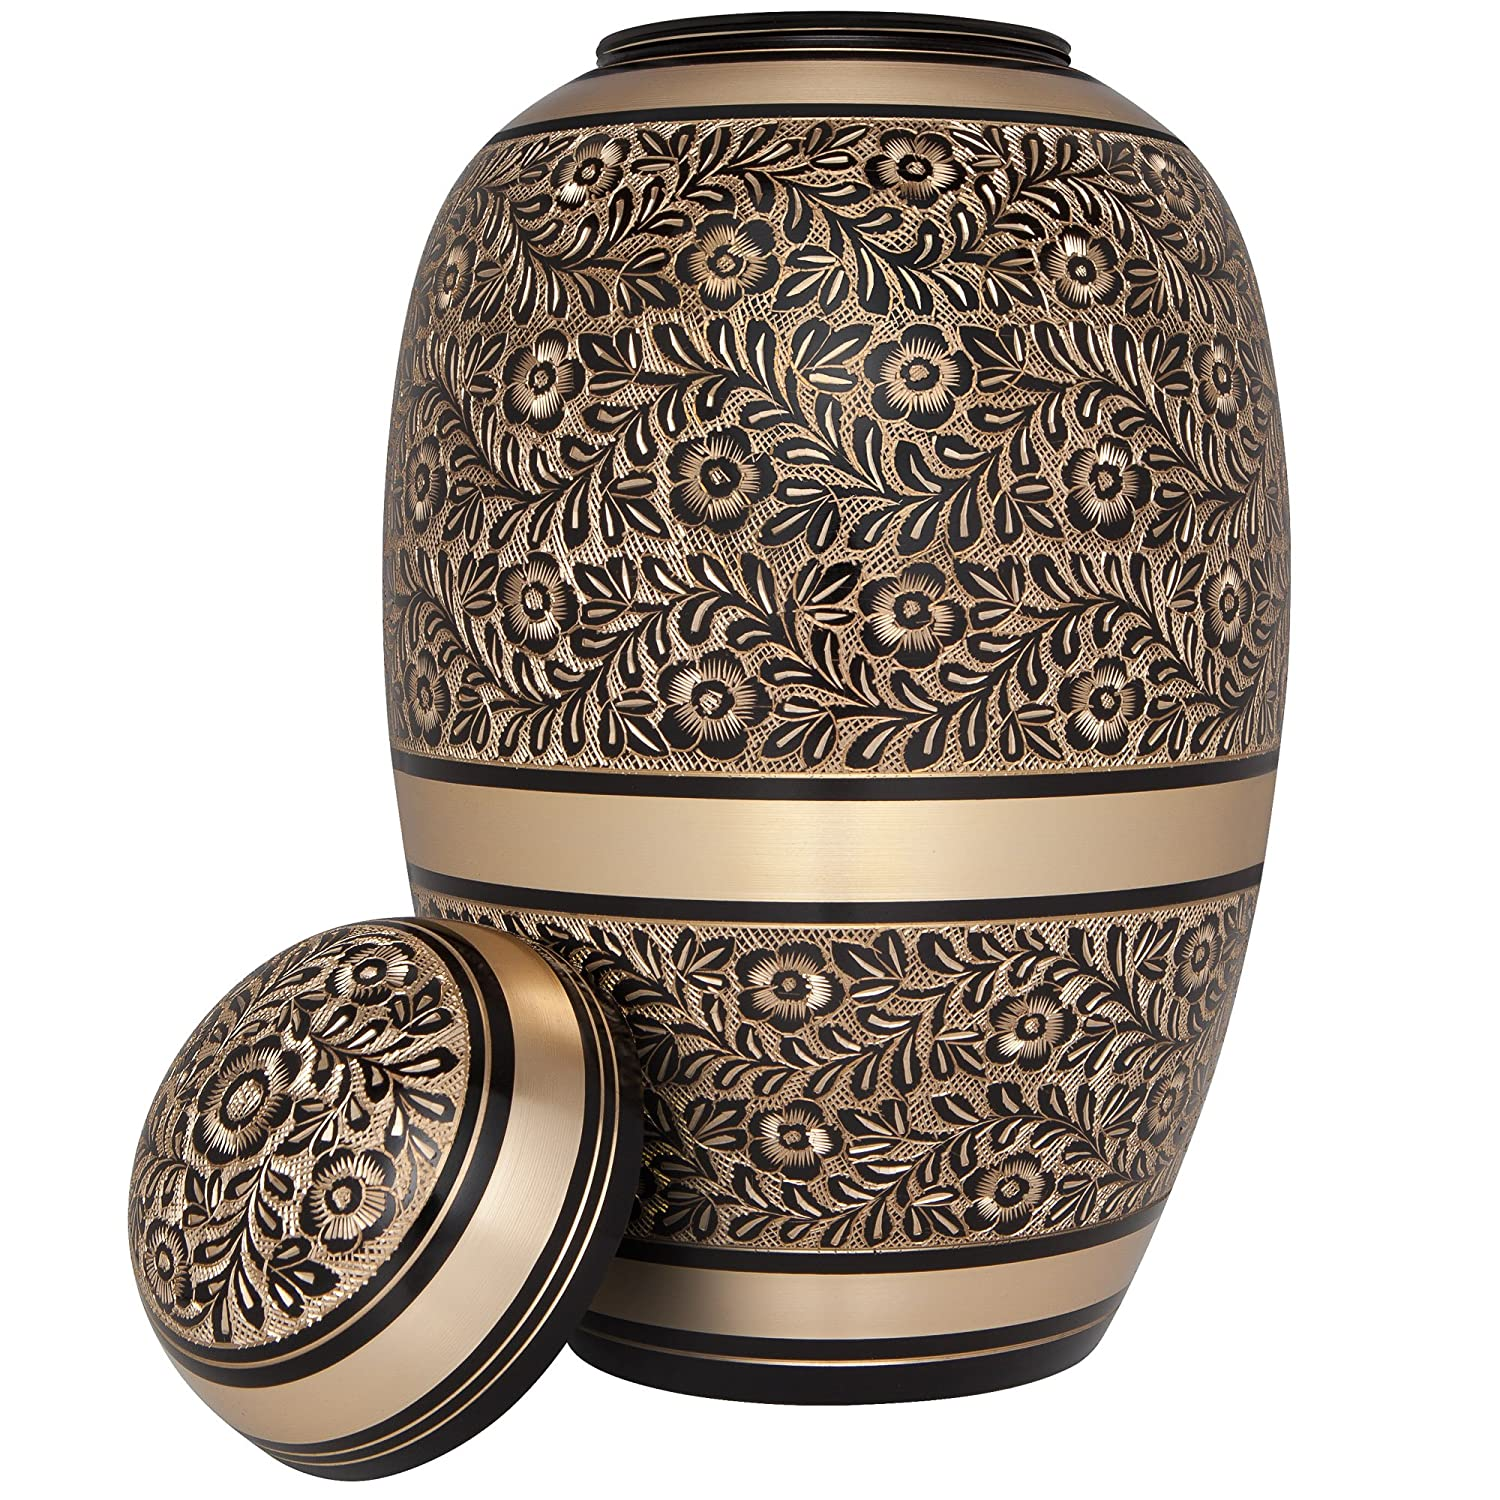 Hand Made in Brass Liliane Memorials Black Gold Funeral Urn Cremation Urn for Human Ashes Rings Model Large Size fits Remains of Adults up to 200 lbs Suitable for Cemetery Burial or Niche